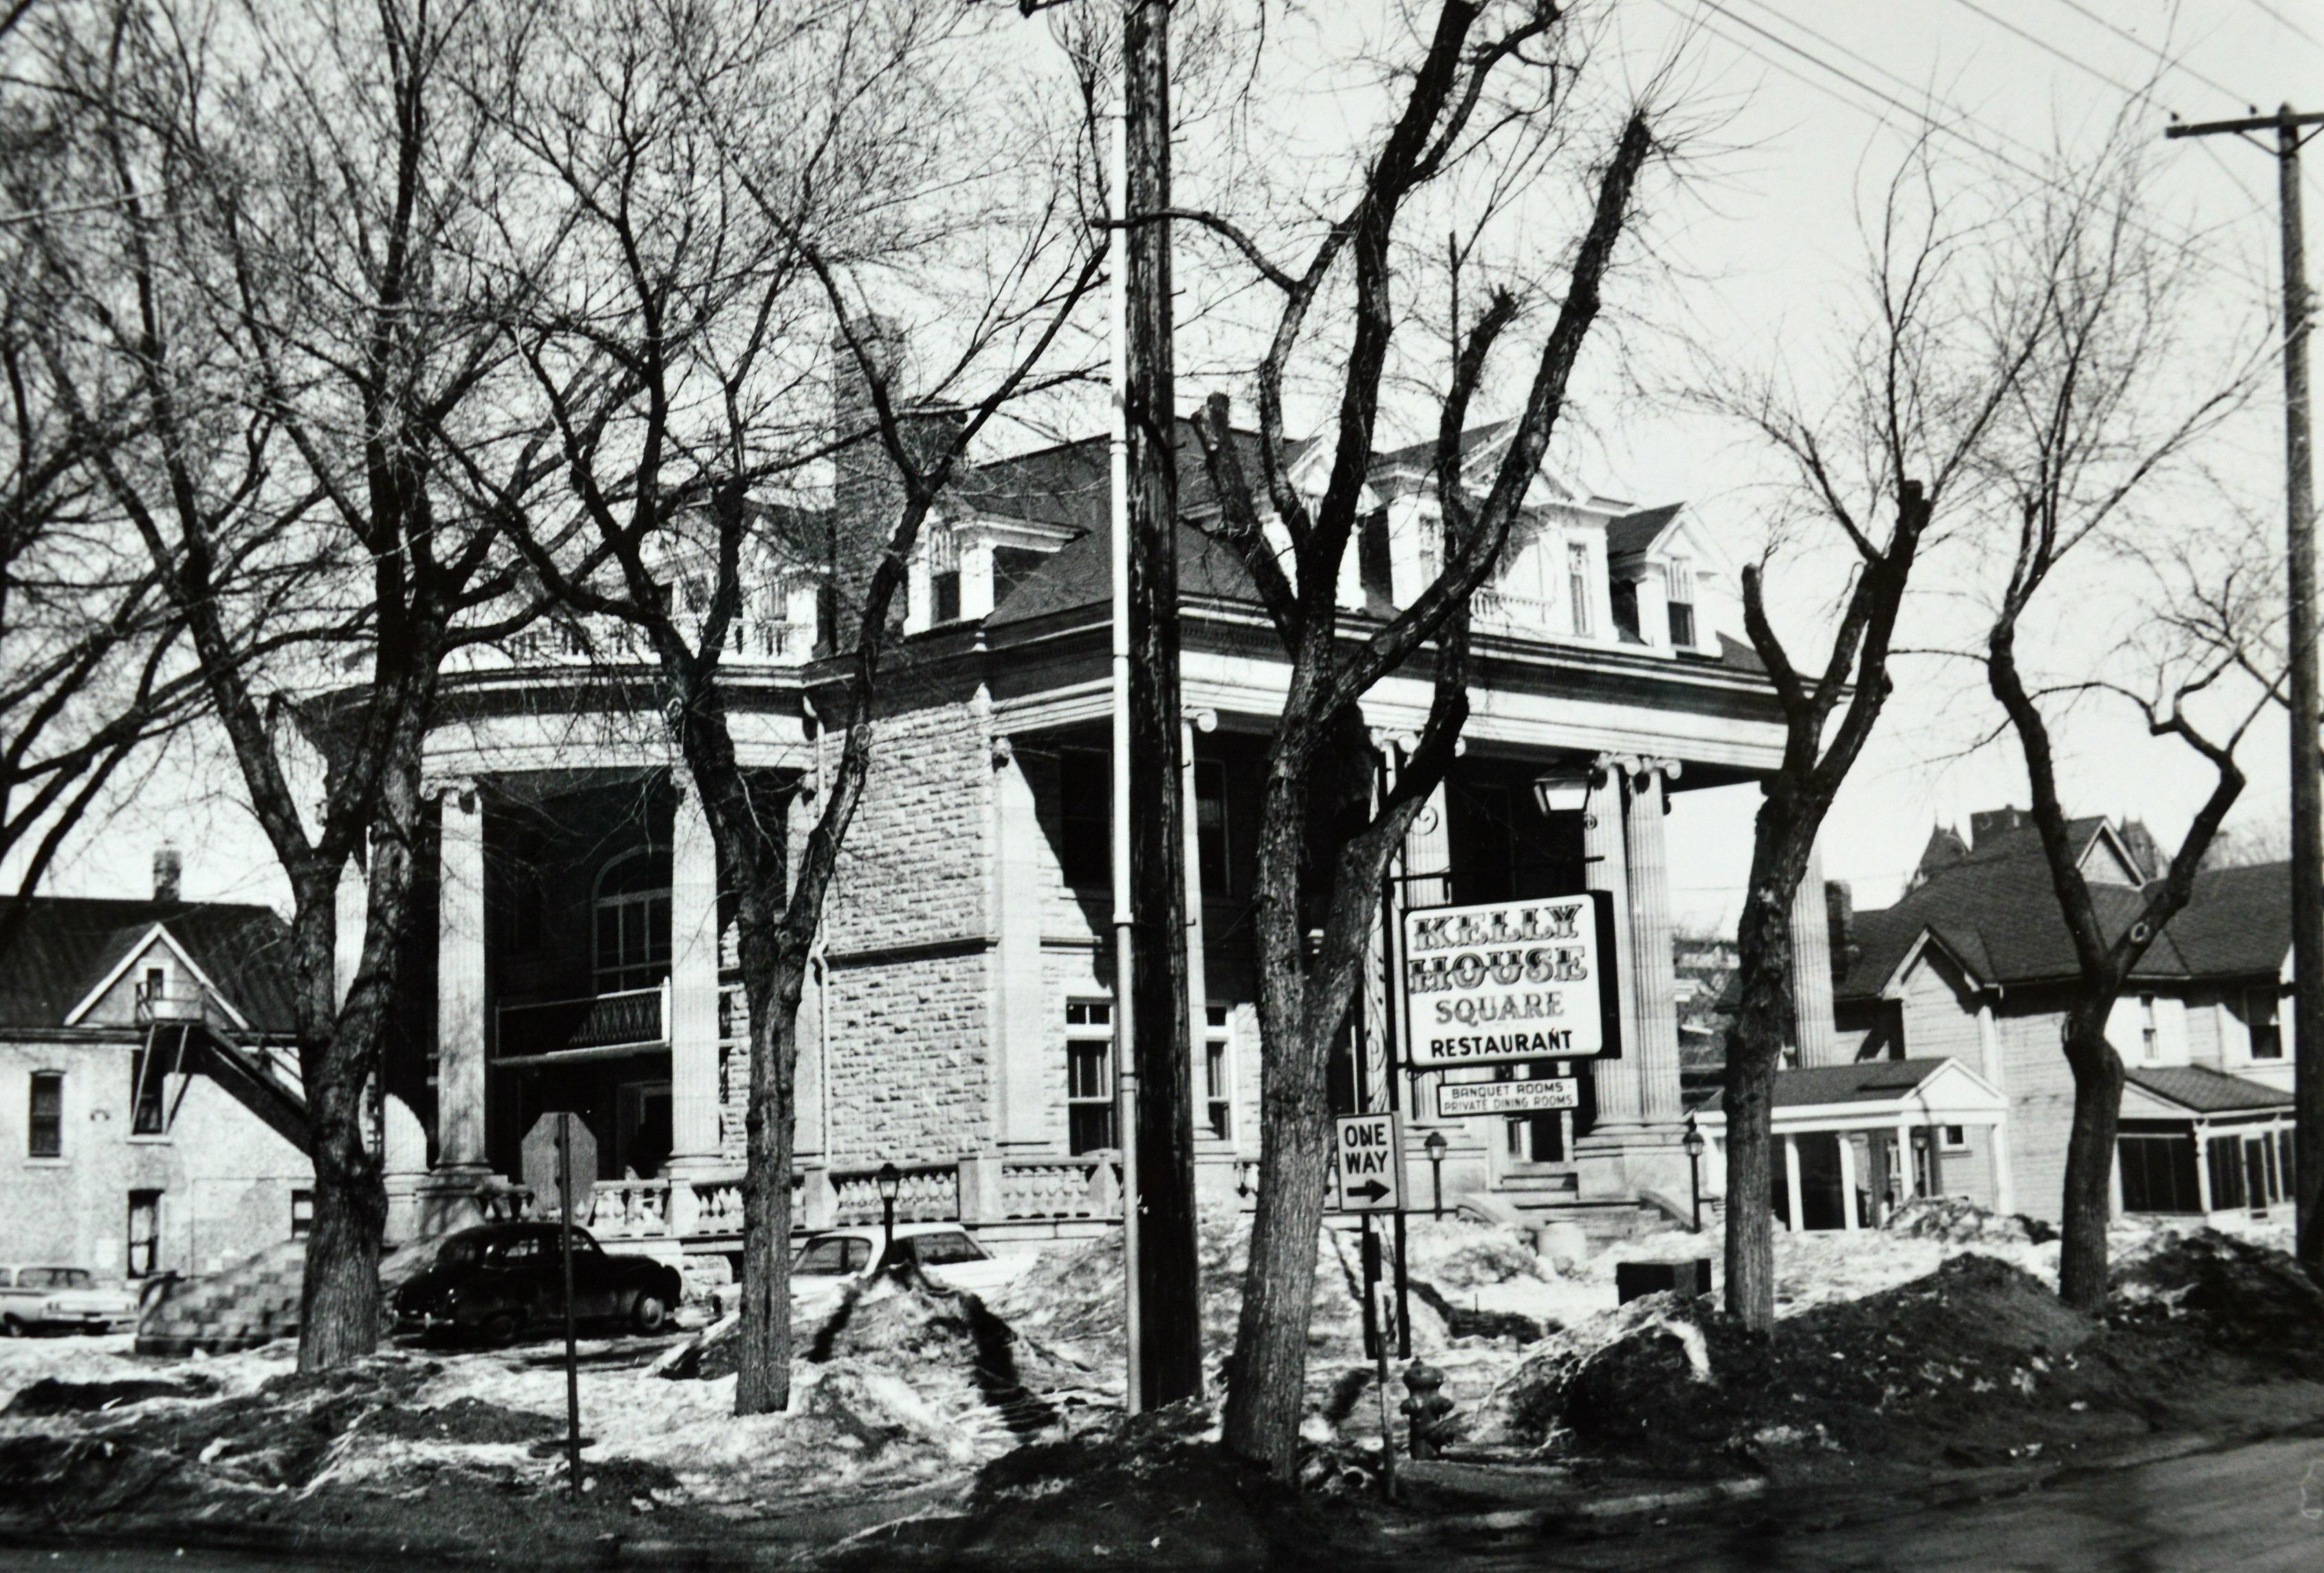 Thomas Kelly's mansion became a series of hotels and restaurants before it was demolished in 1965. (Manitoba Archives)